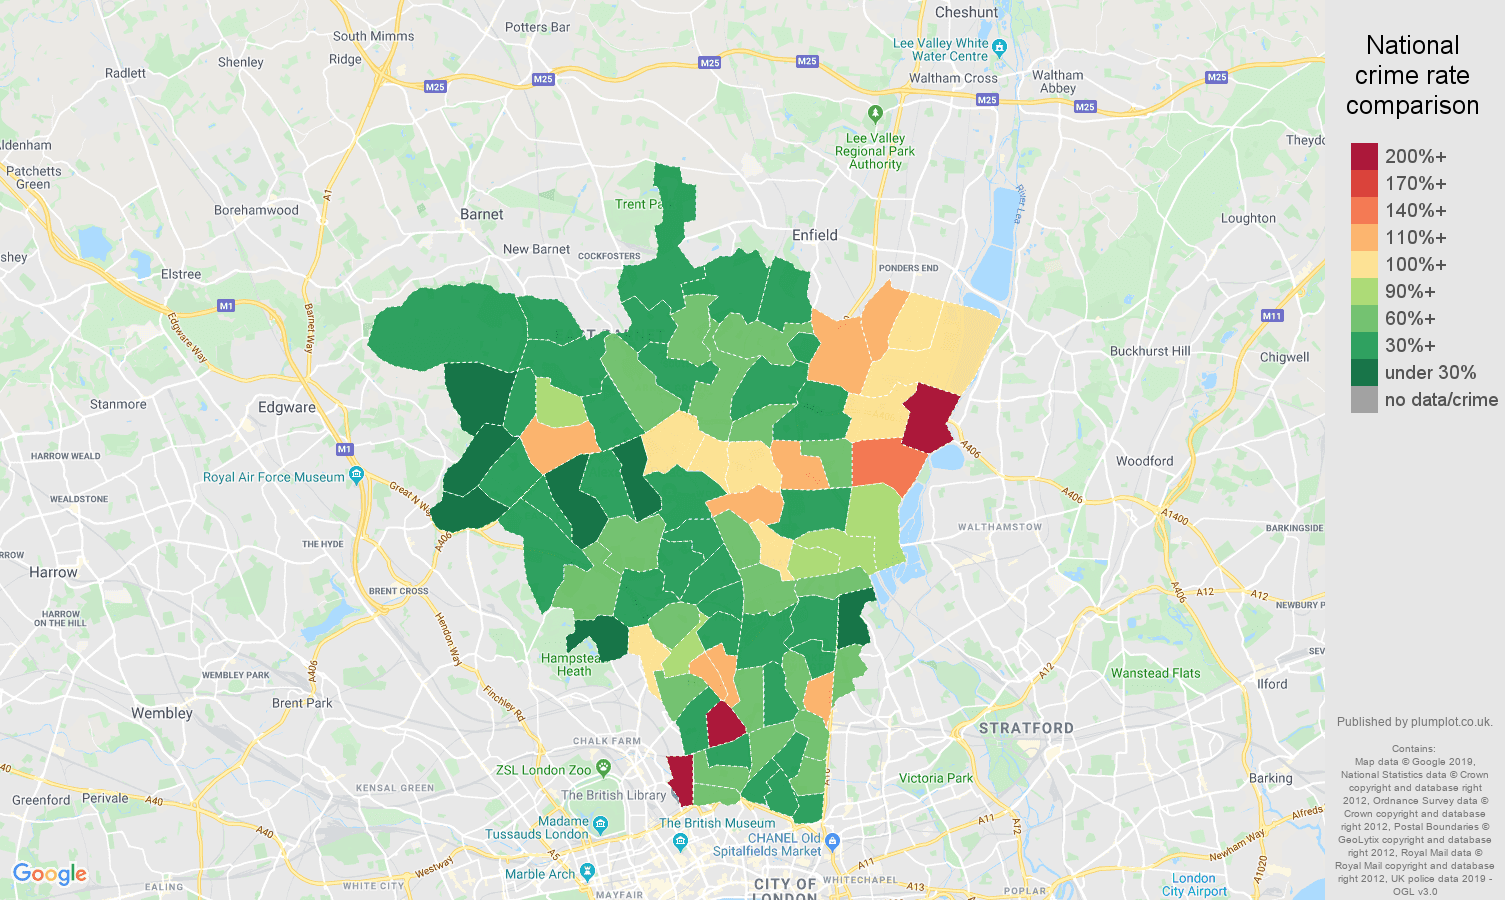 North London other crime rate comparison map